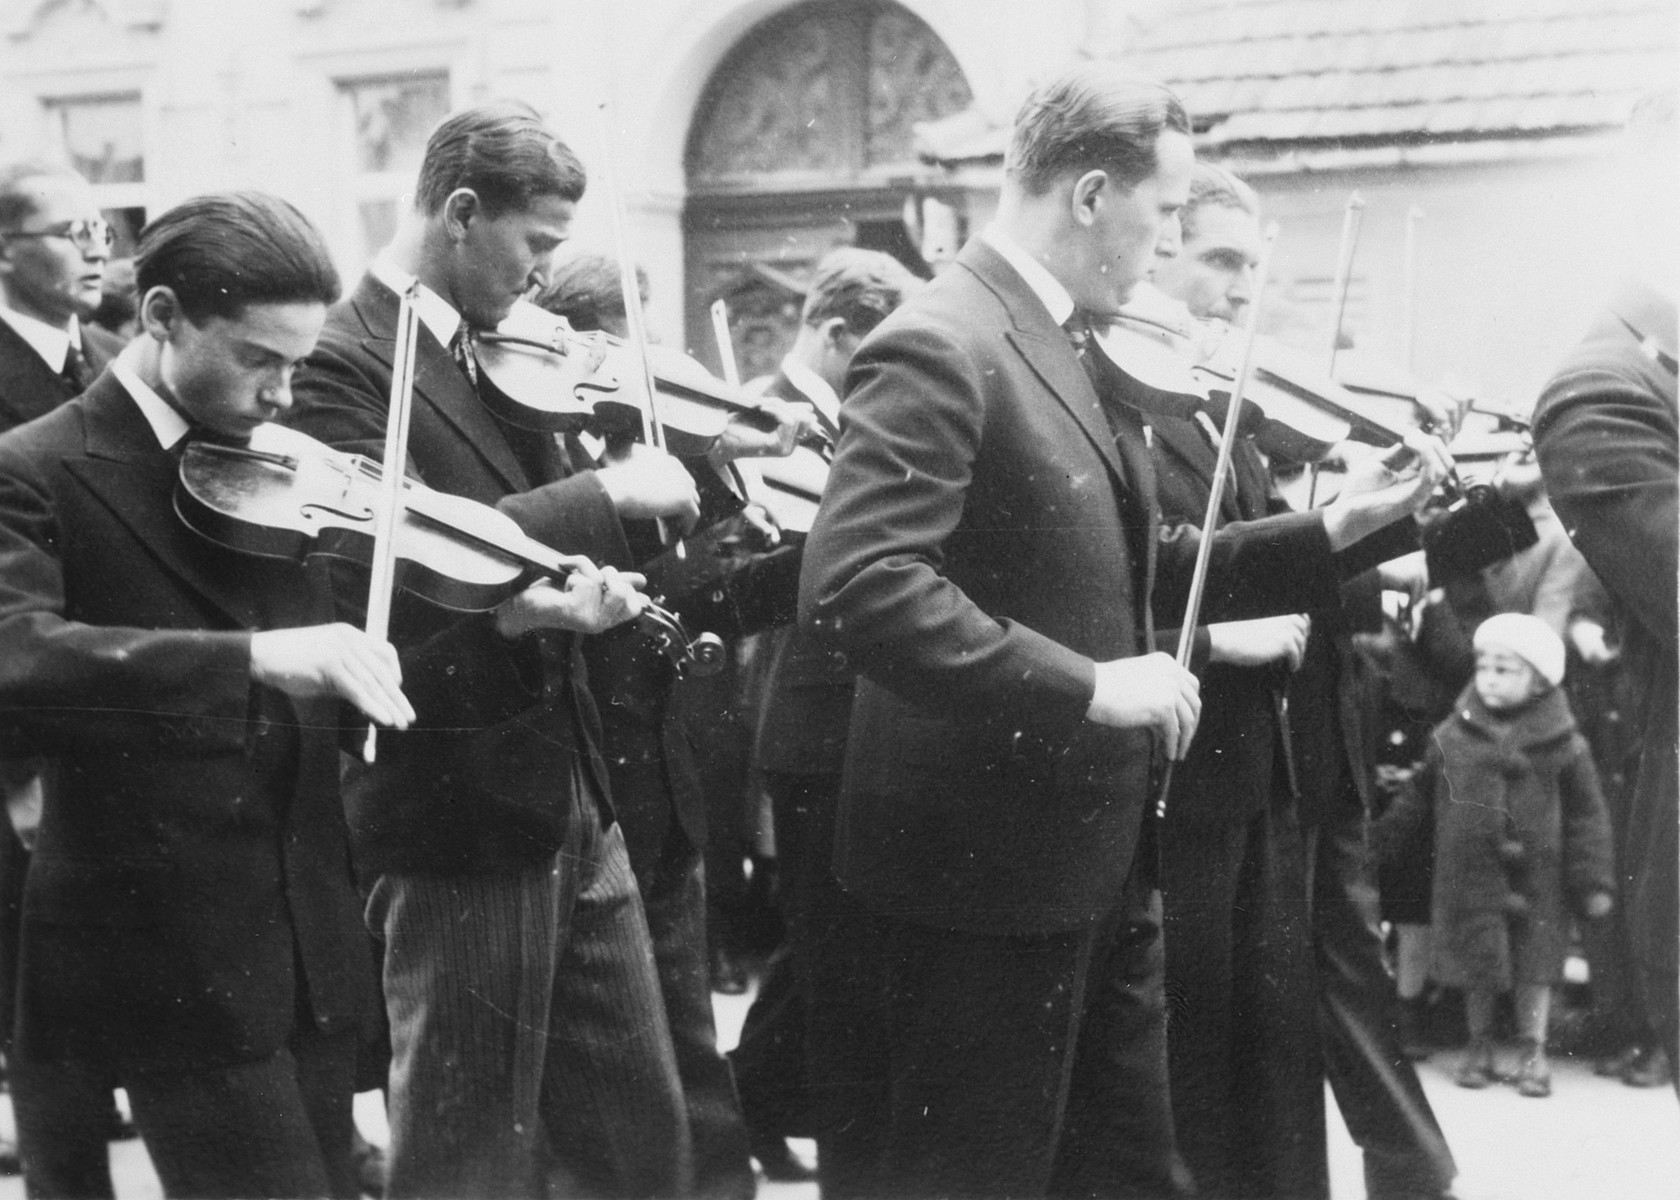 Graduates of a Gymnasium in Budapest parade to the commencement excercises playing the violin.  Among those pictured is Denes Simonyi (left), one of three Jewish students.